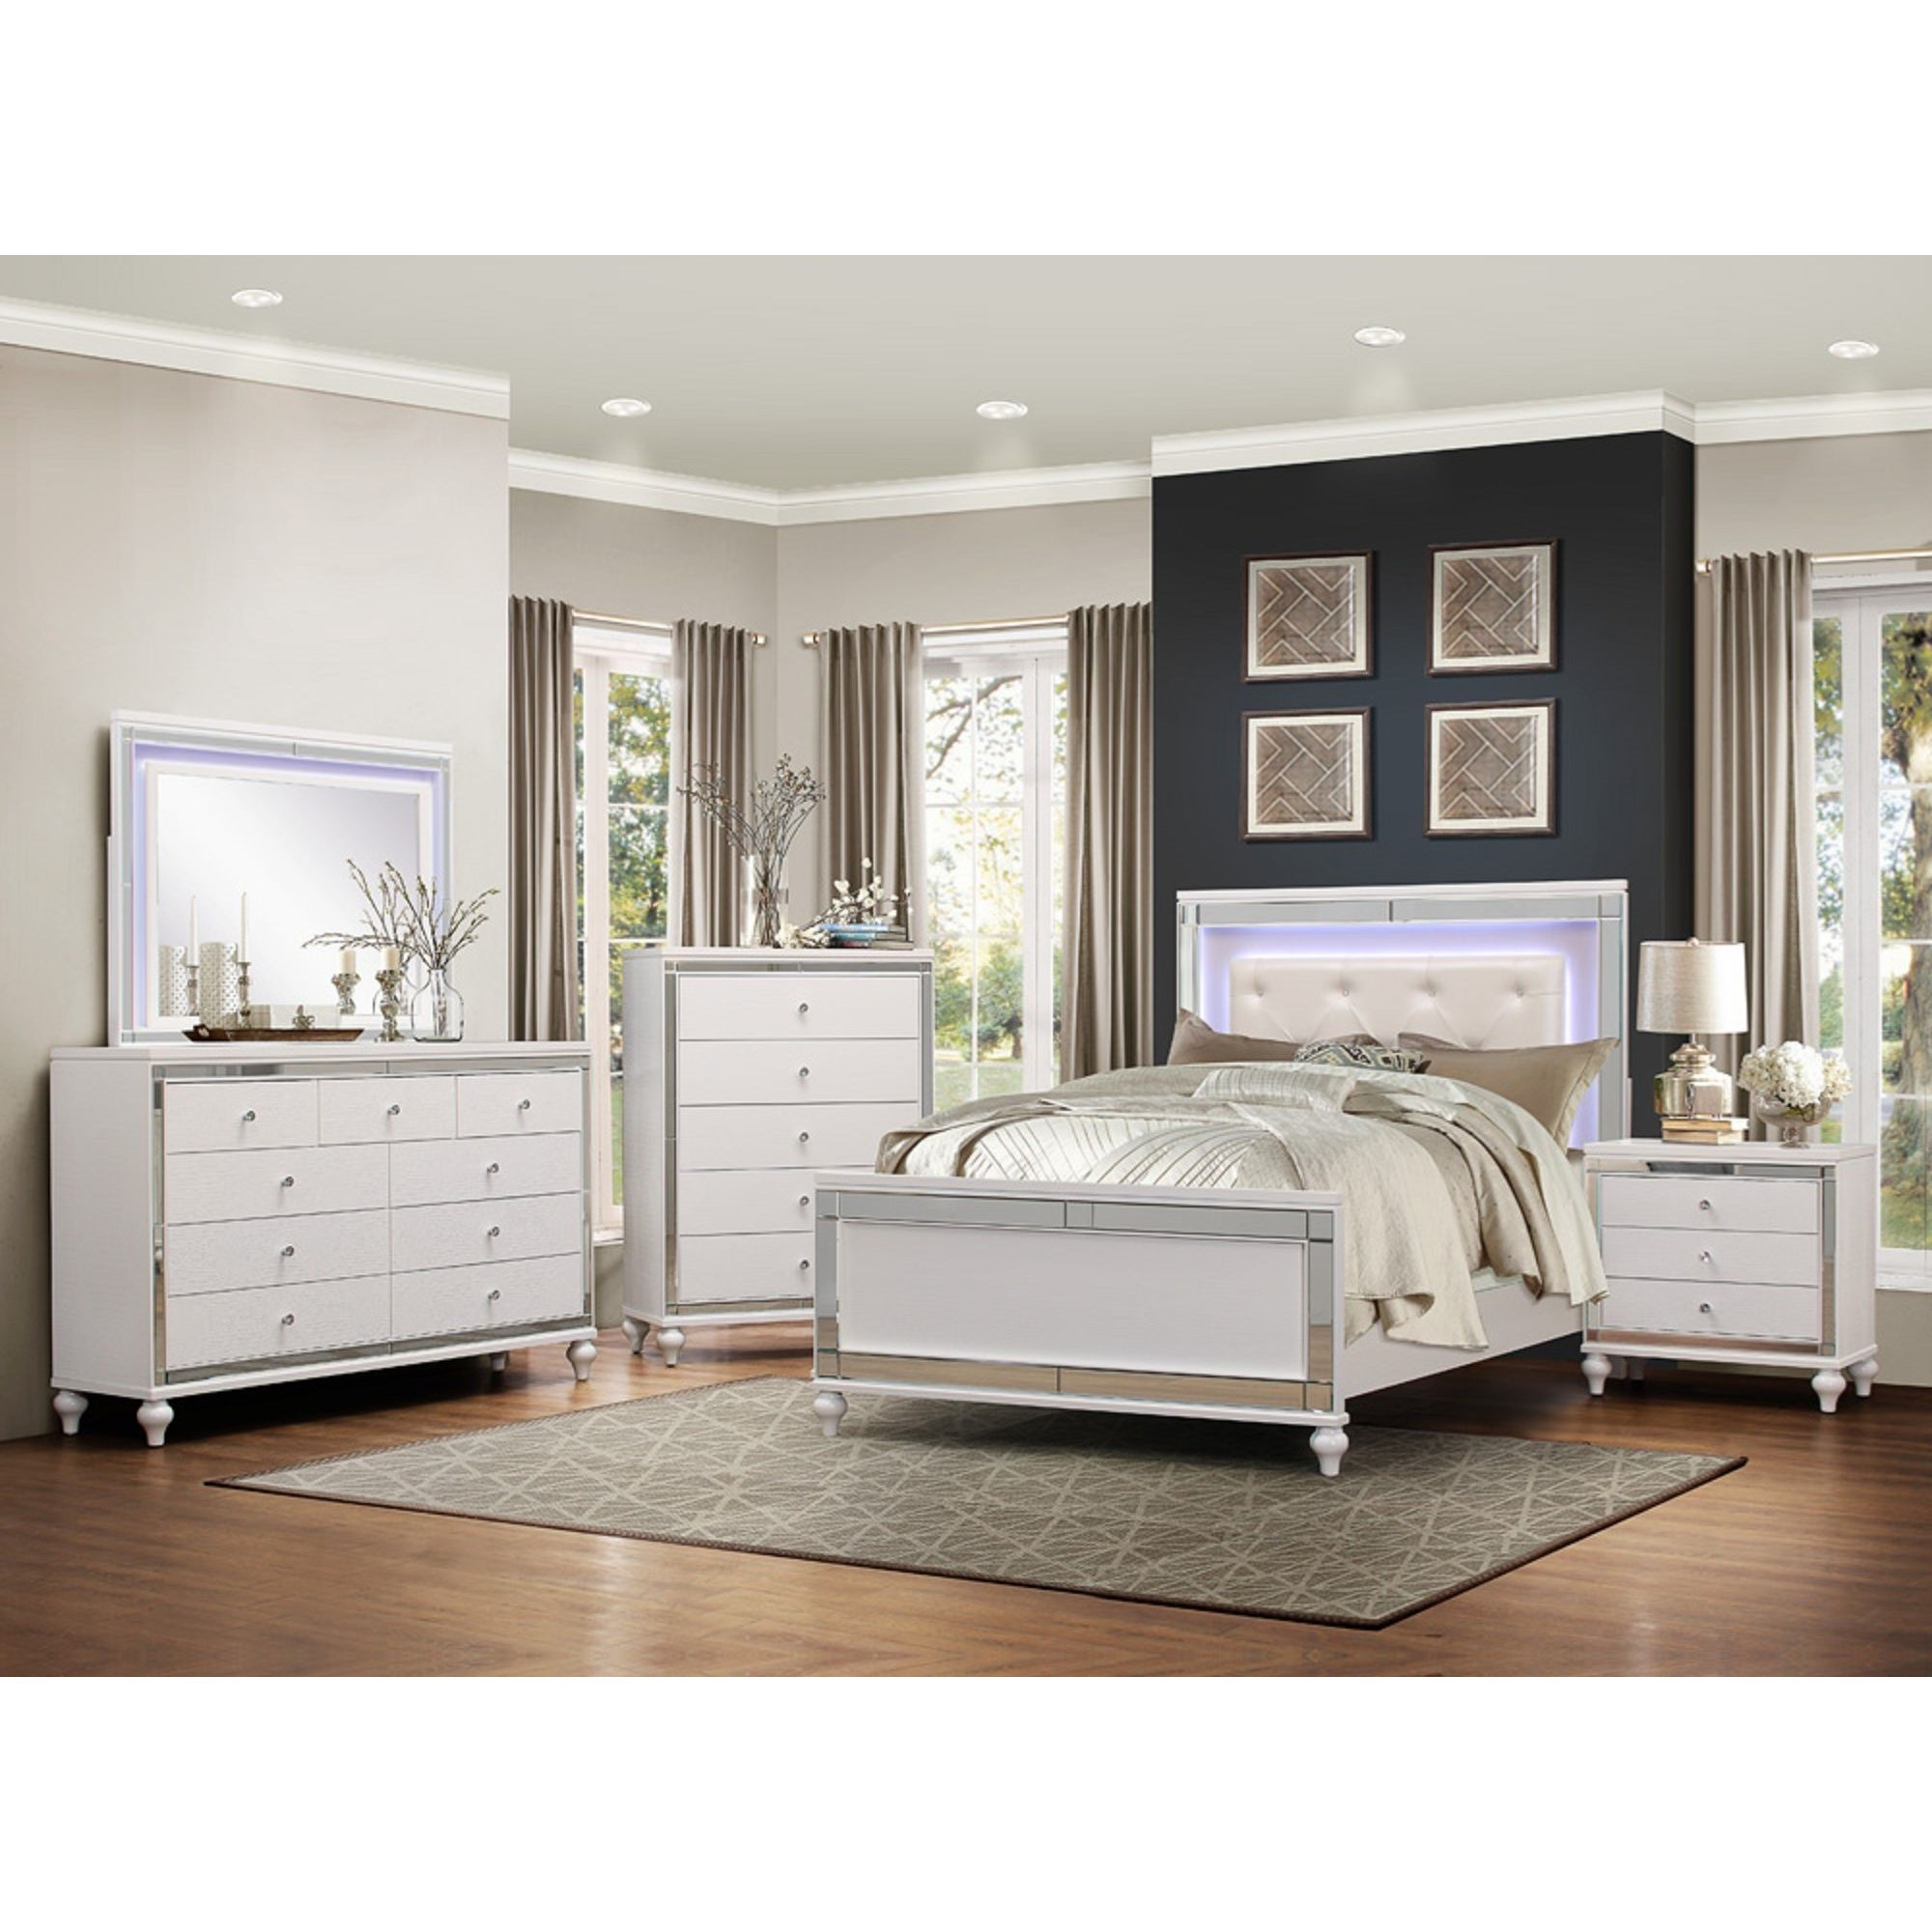 Alonza Cal King Bedroom Group without Chest by Homelegance at Carolina Direct